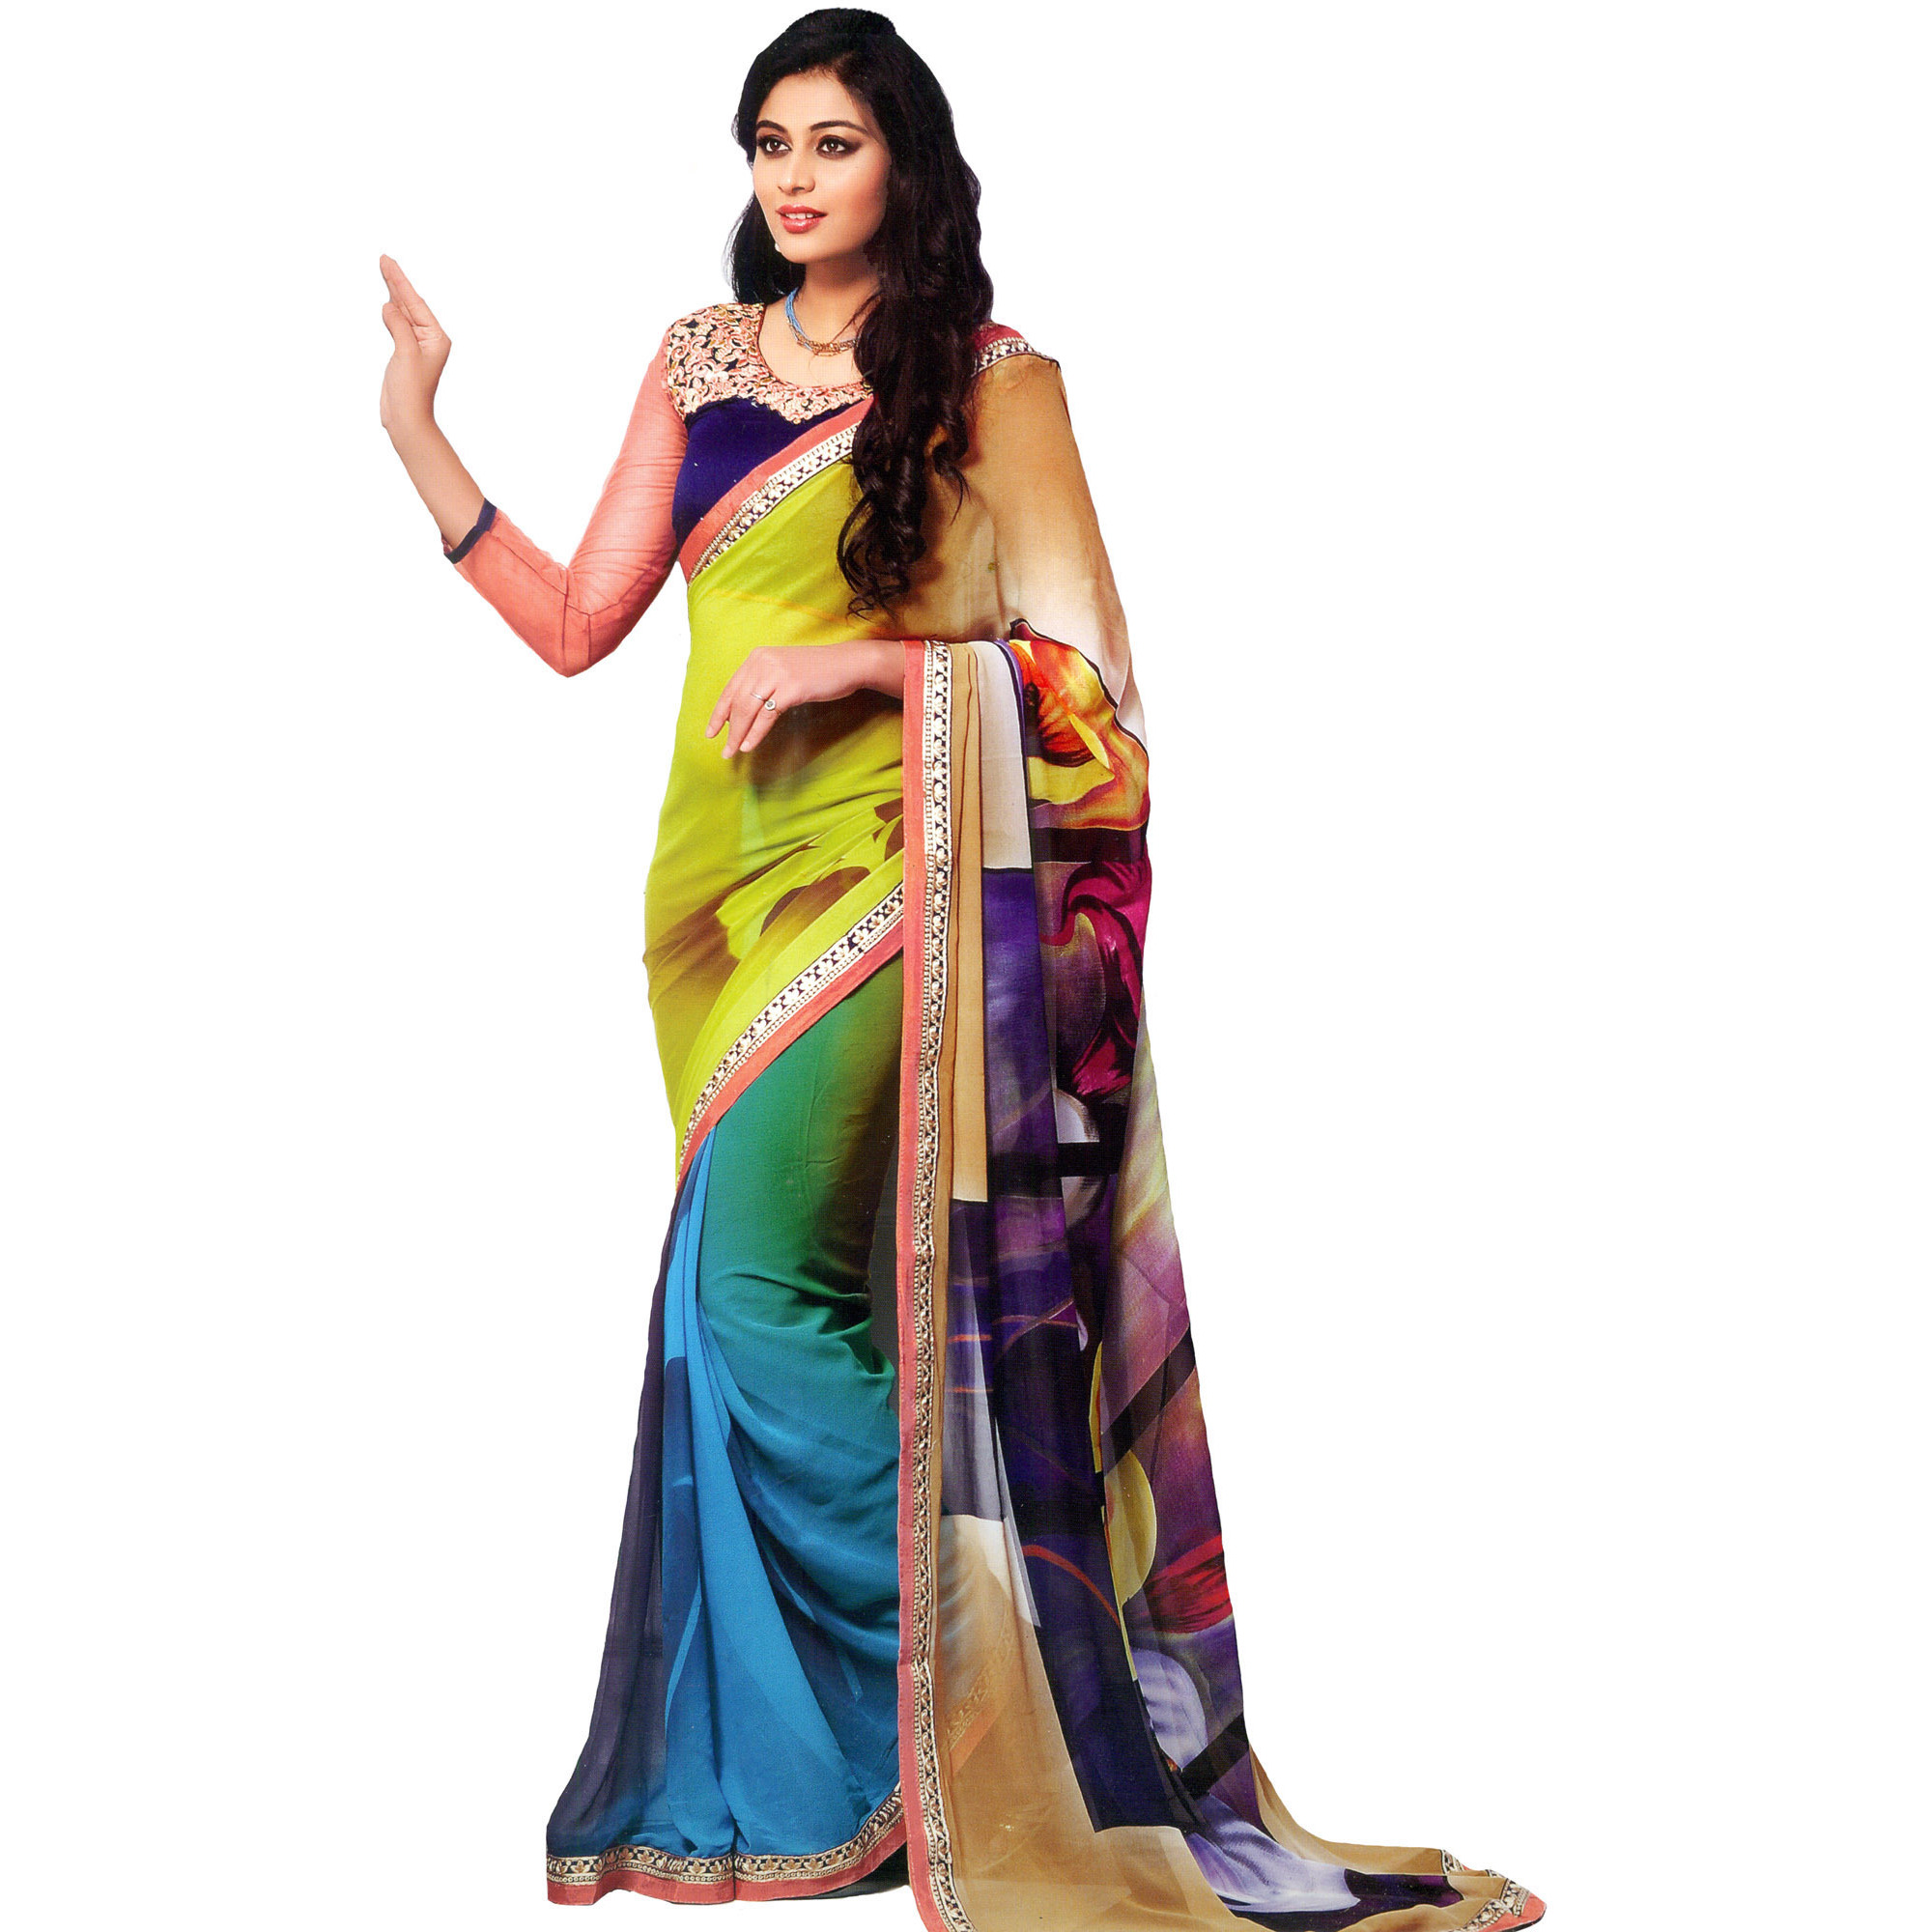 Multicolor Art-Deco Printed Sari with Embroidered Patch Border